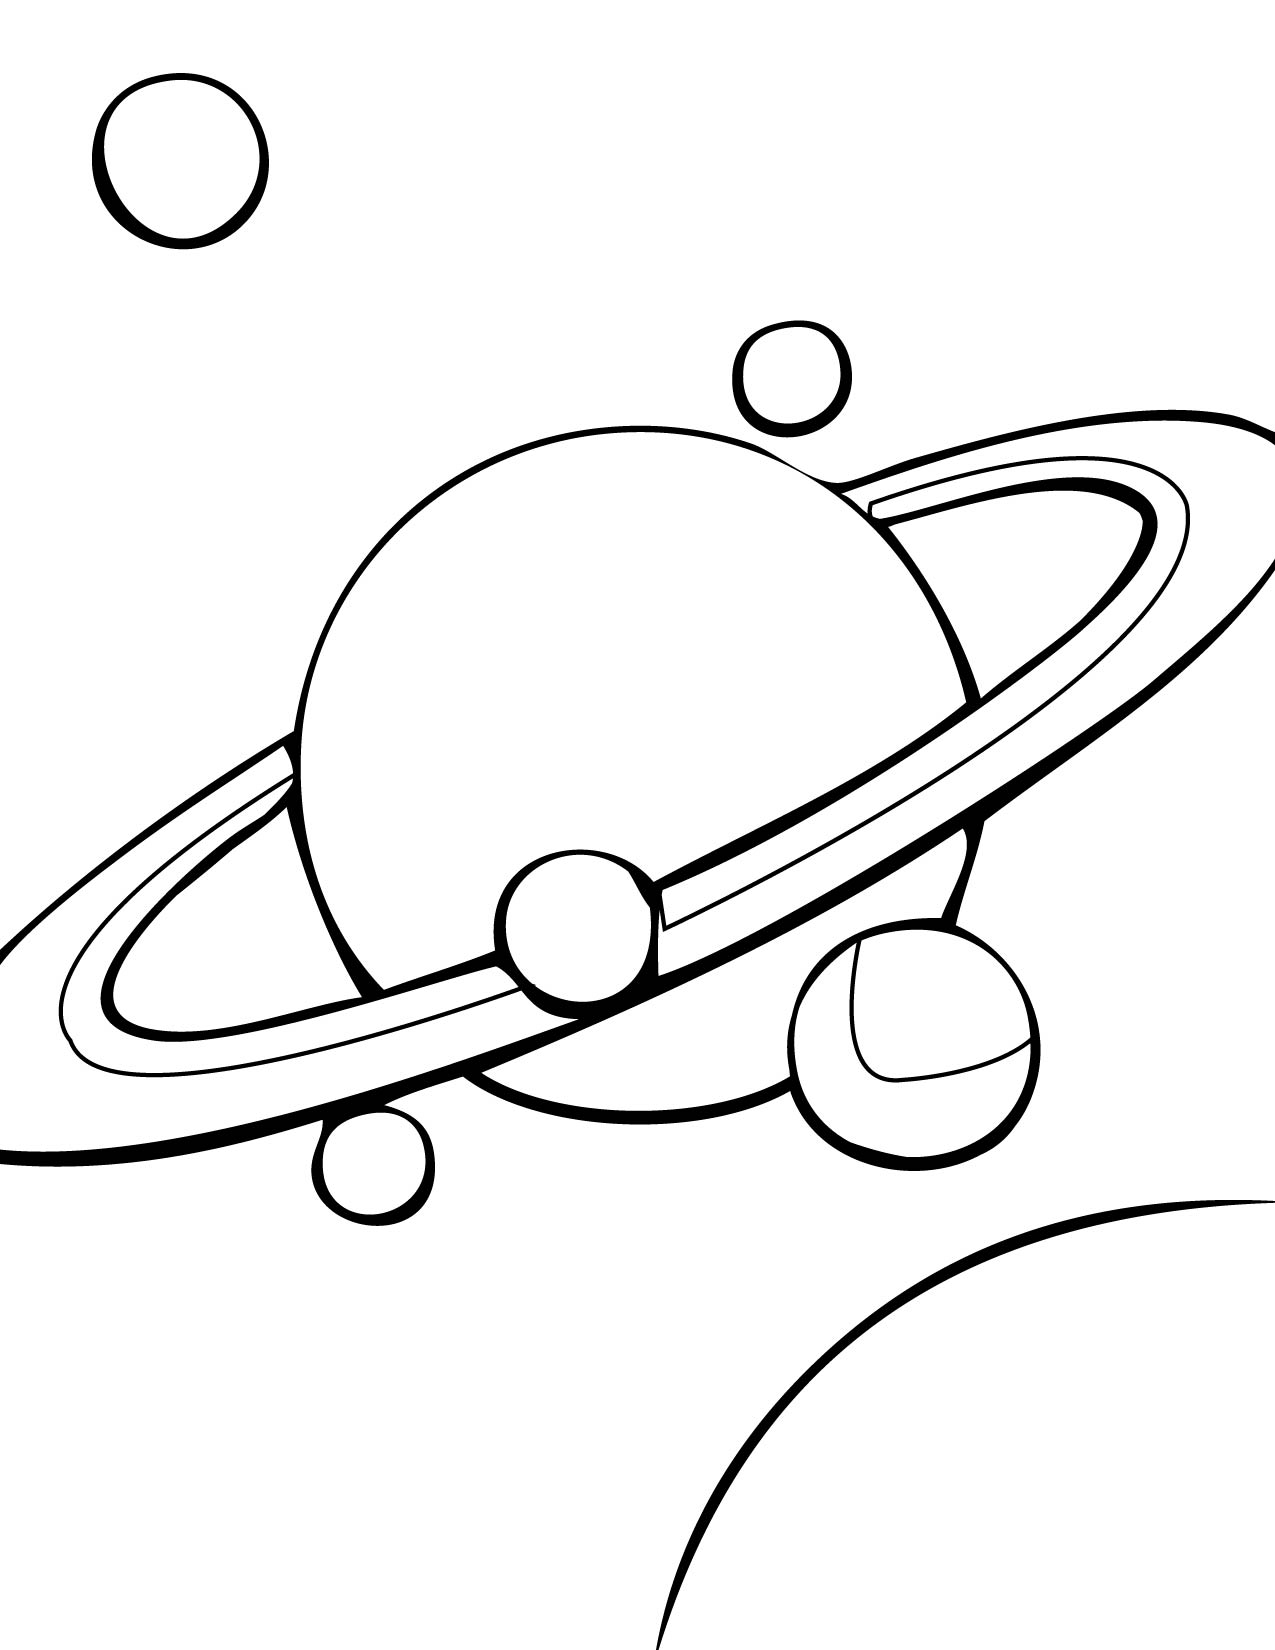 free planet saturn coloring pages - photo#25